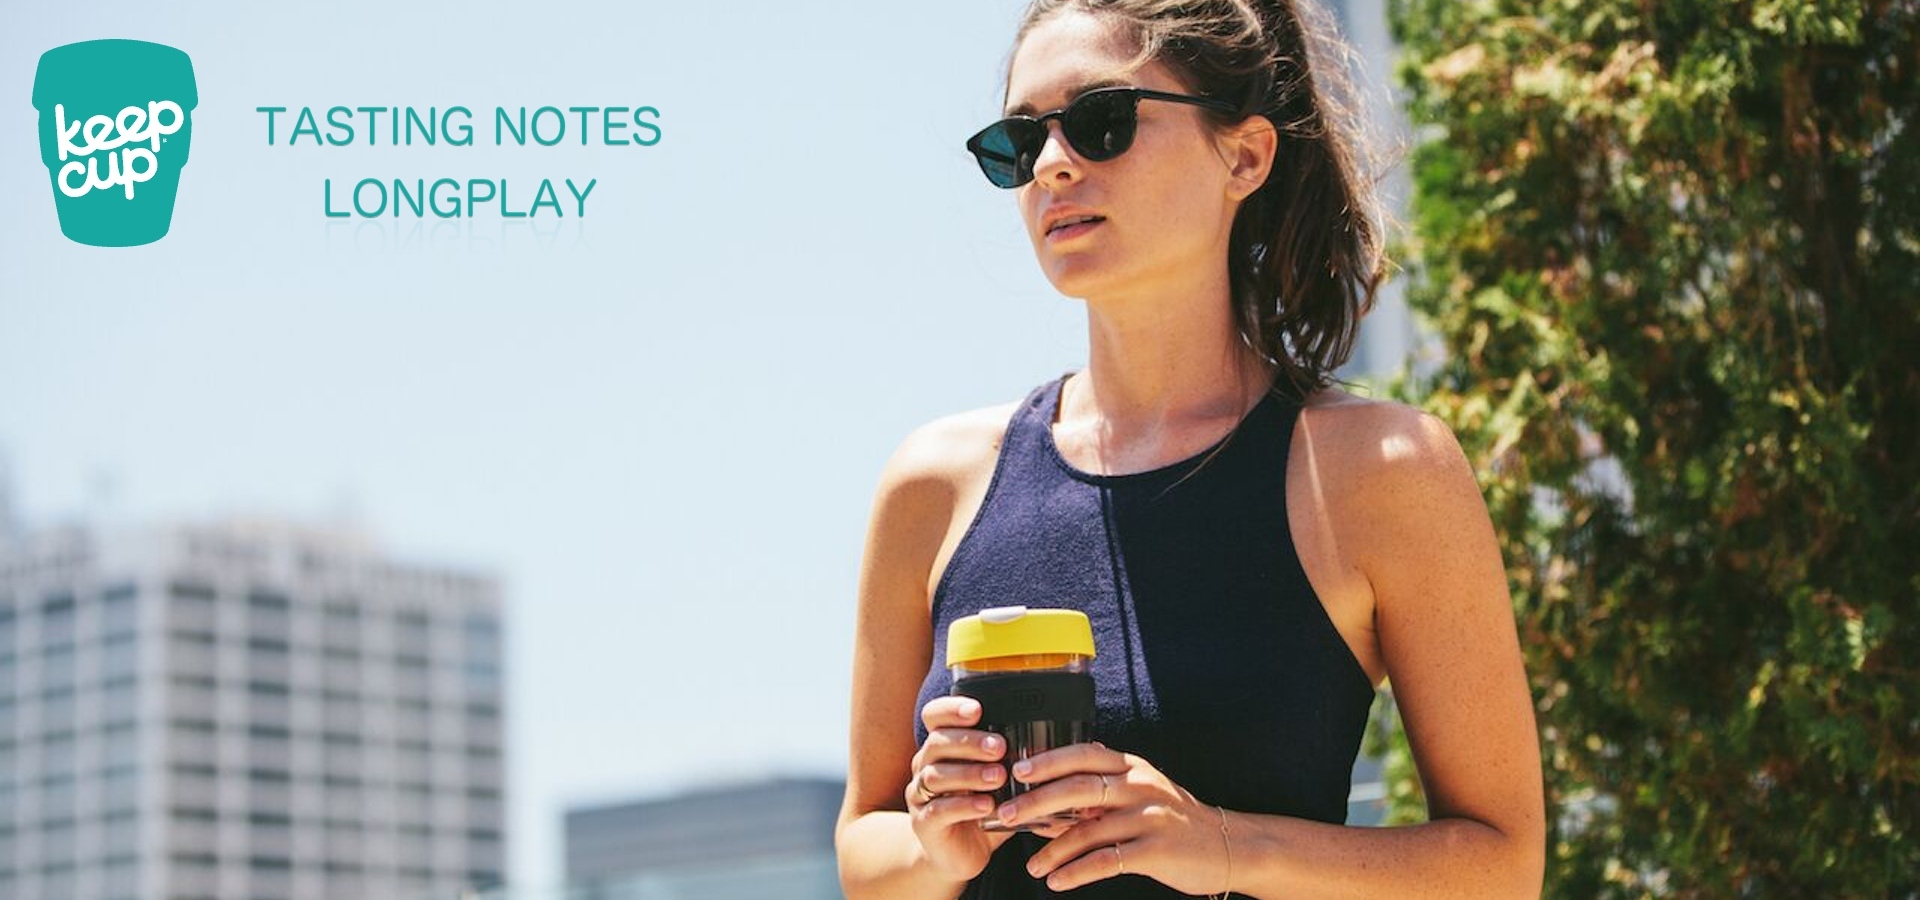 Do you want the best KeepCup? So go with LongPlay.